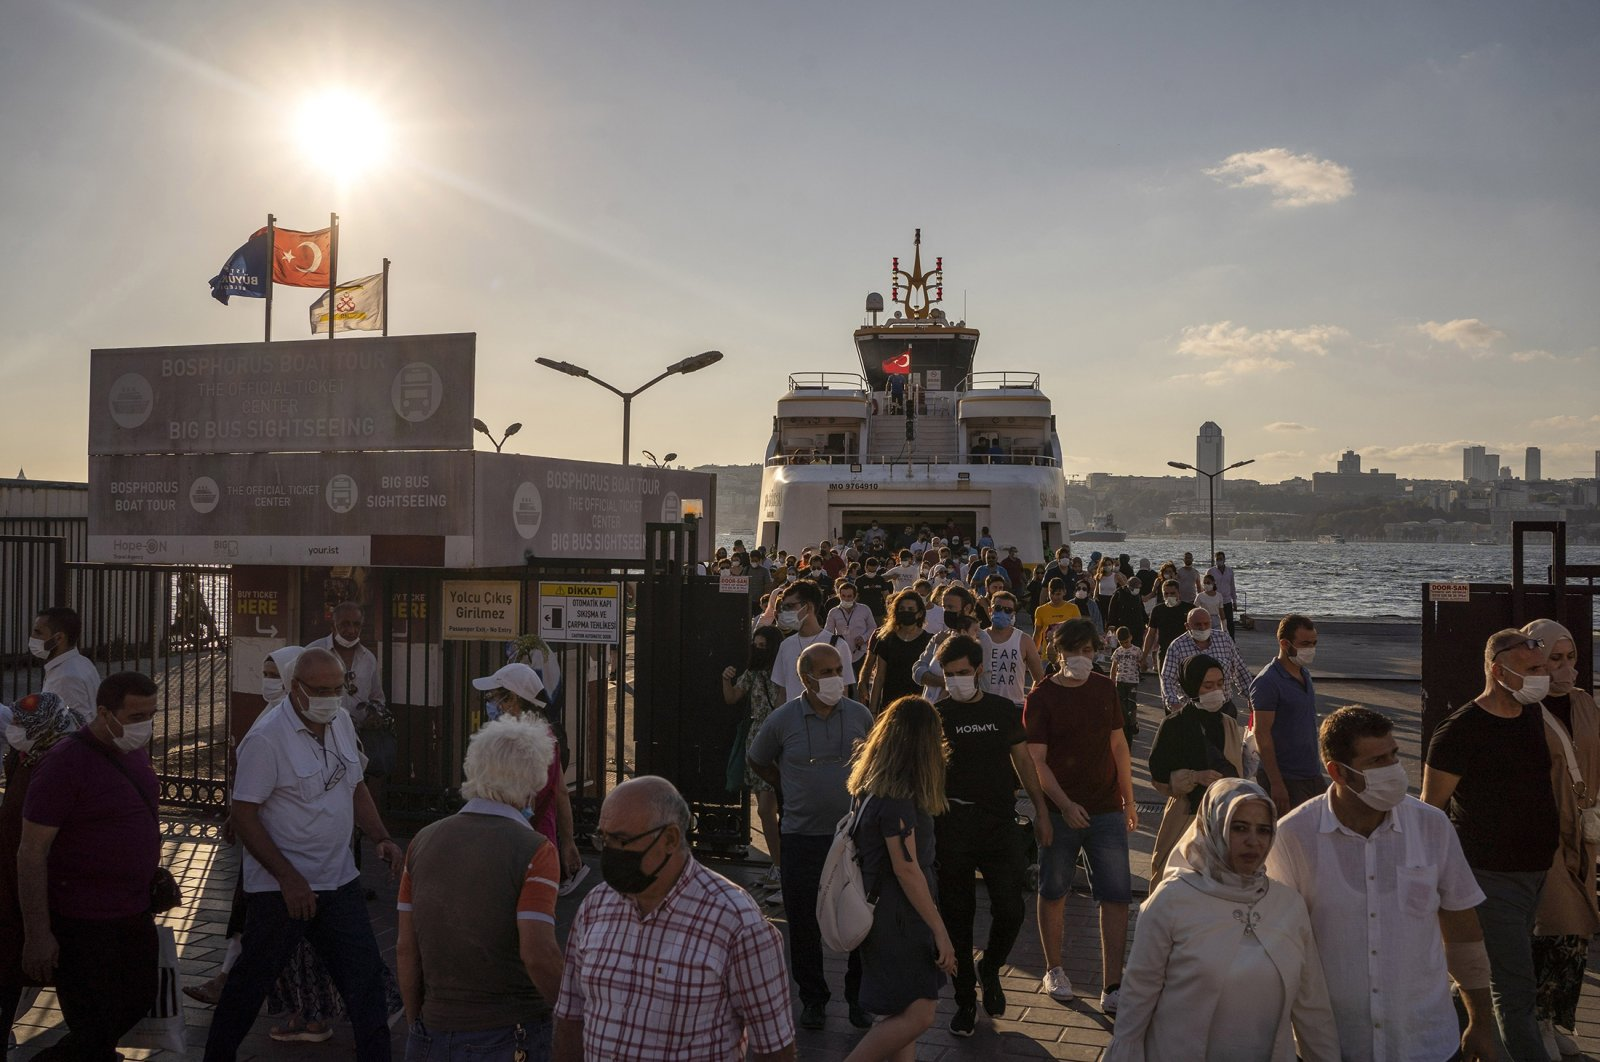 Passengers disembark from a tourist ferry at the docks on the Anatolian side, also known as the Asian side of Istanbul, Turkey, Aug. 16, 2021. (Getty Images Photo)